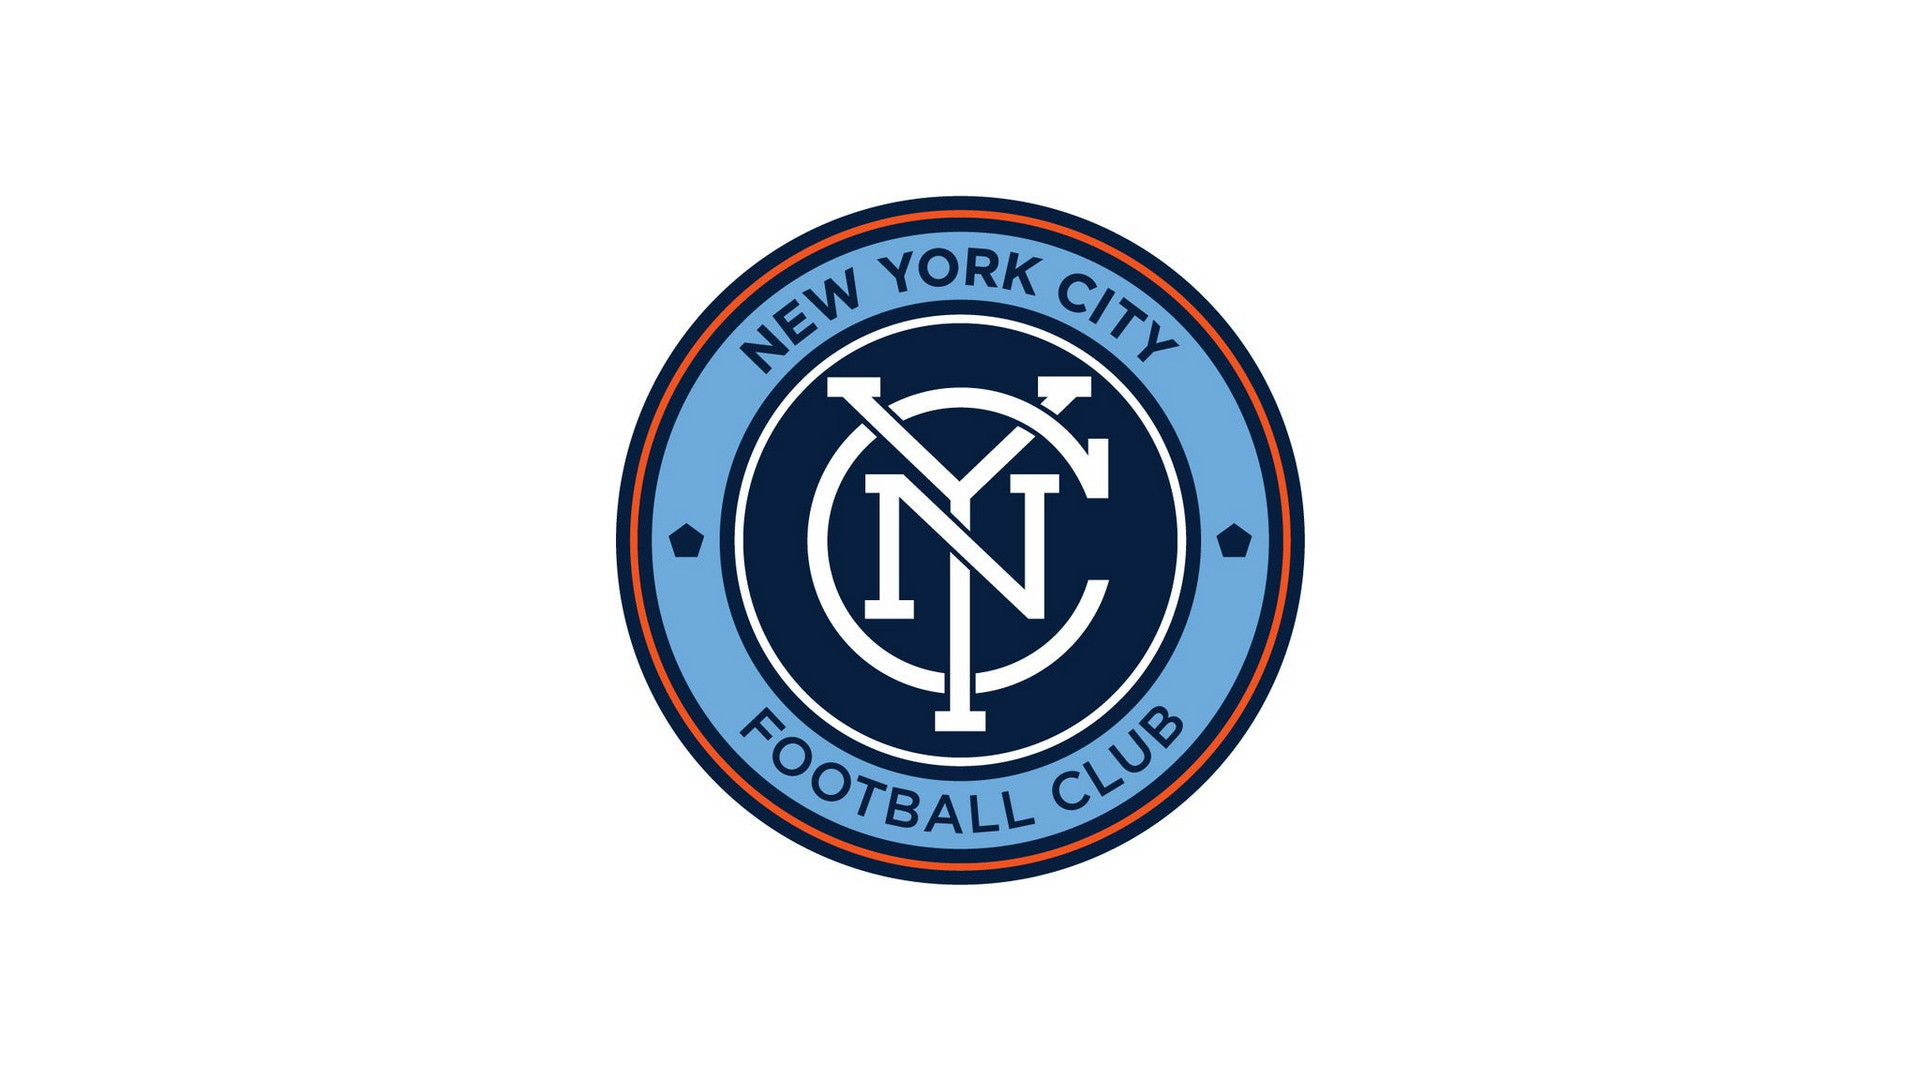 Wallpapers HD New York City FC with high-resolution 1920x1080 pixel. You can use this wallpaper for your Desktop Computers, Mac Screensavers, Windows Backgrounds, iPhone Wallpapers, Tablet or Android Lock screen and another Mobile device